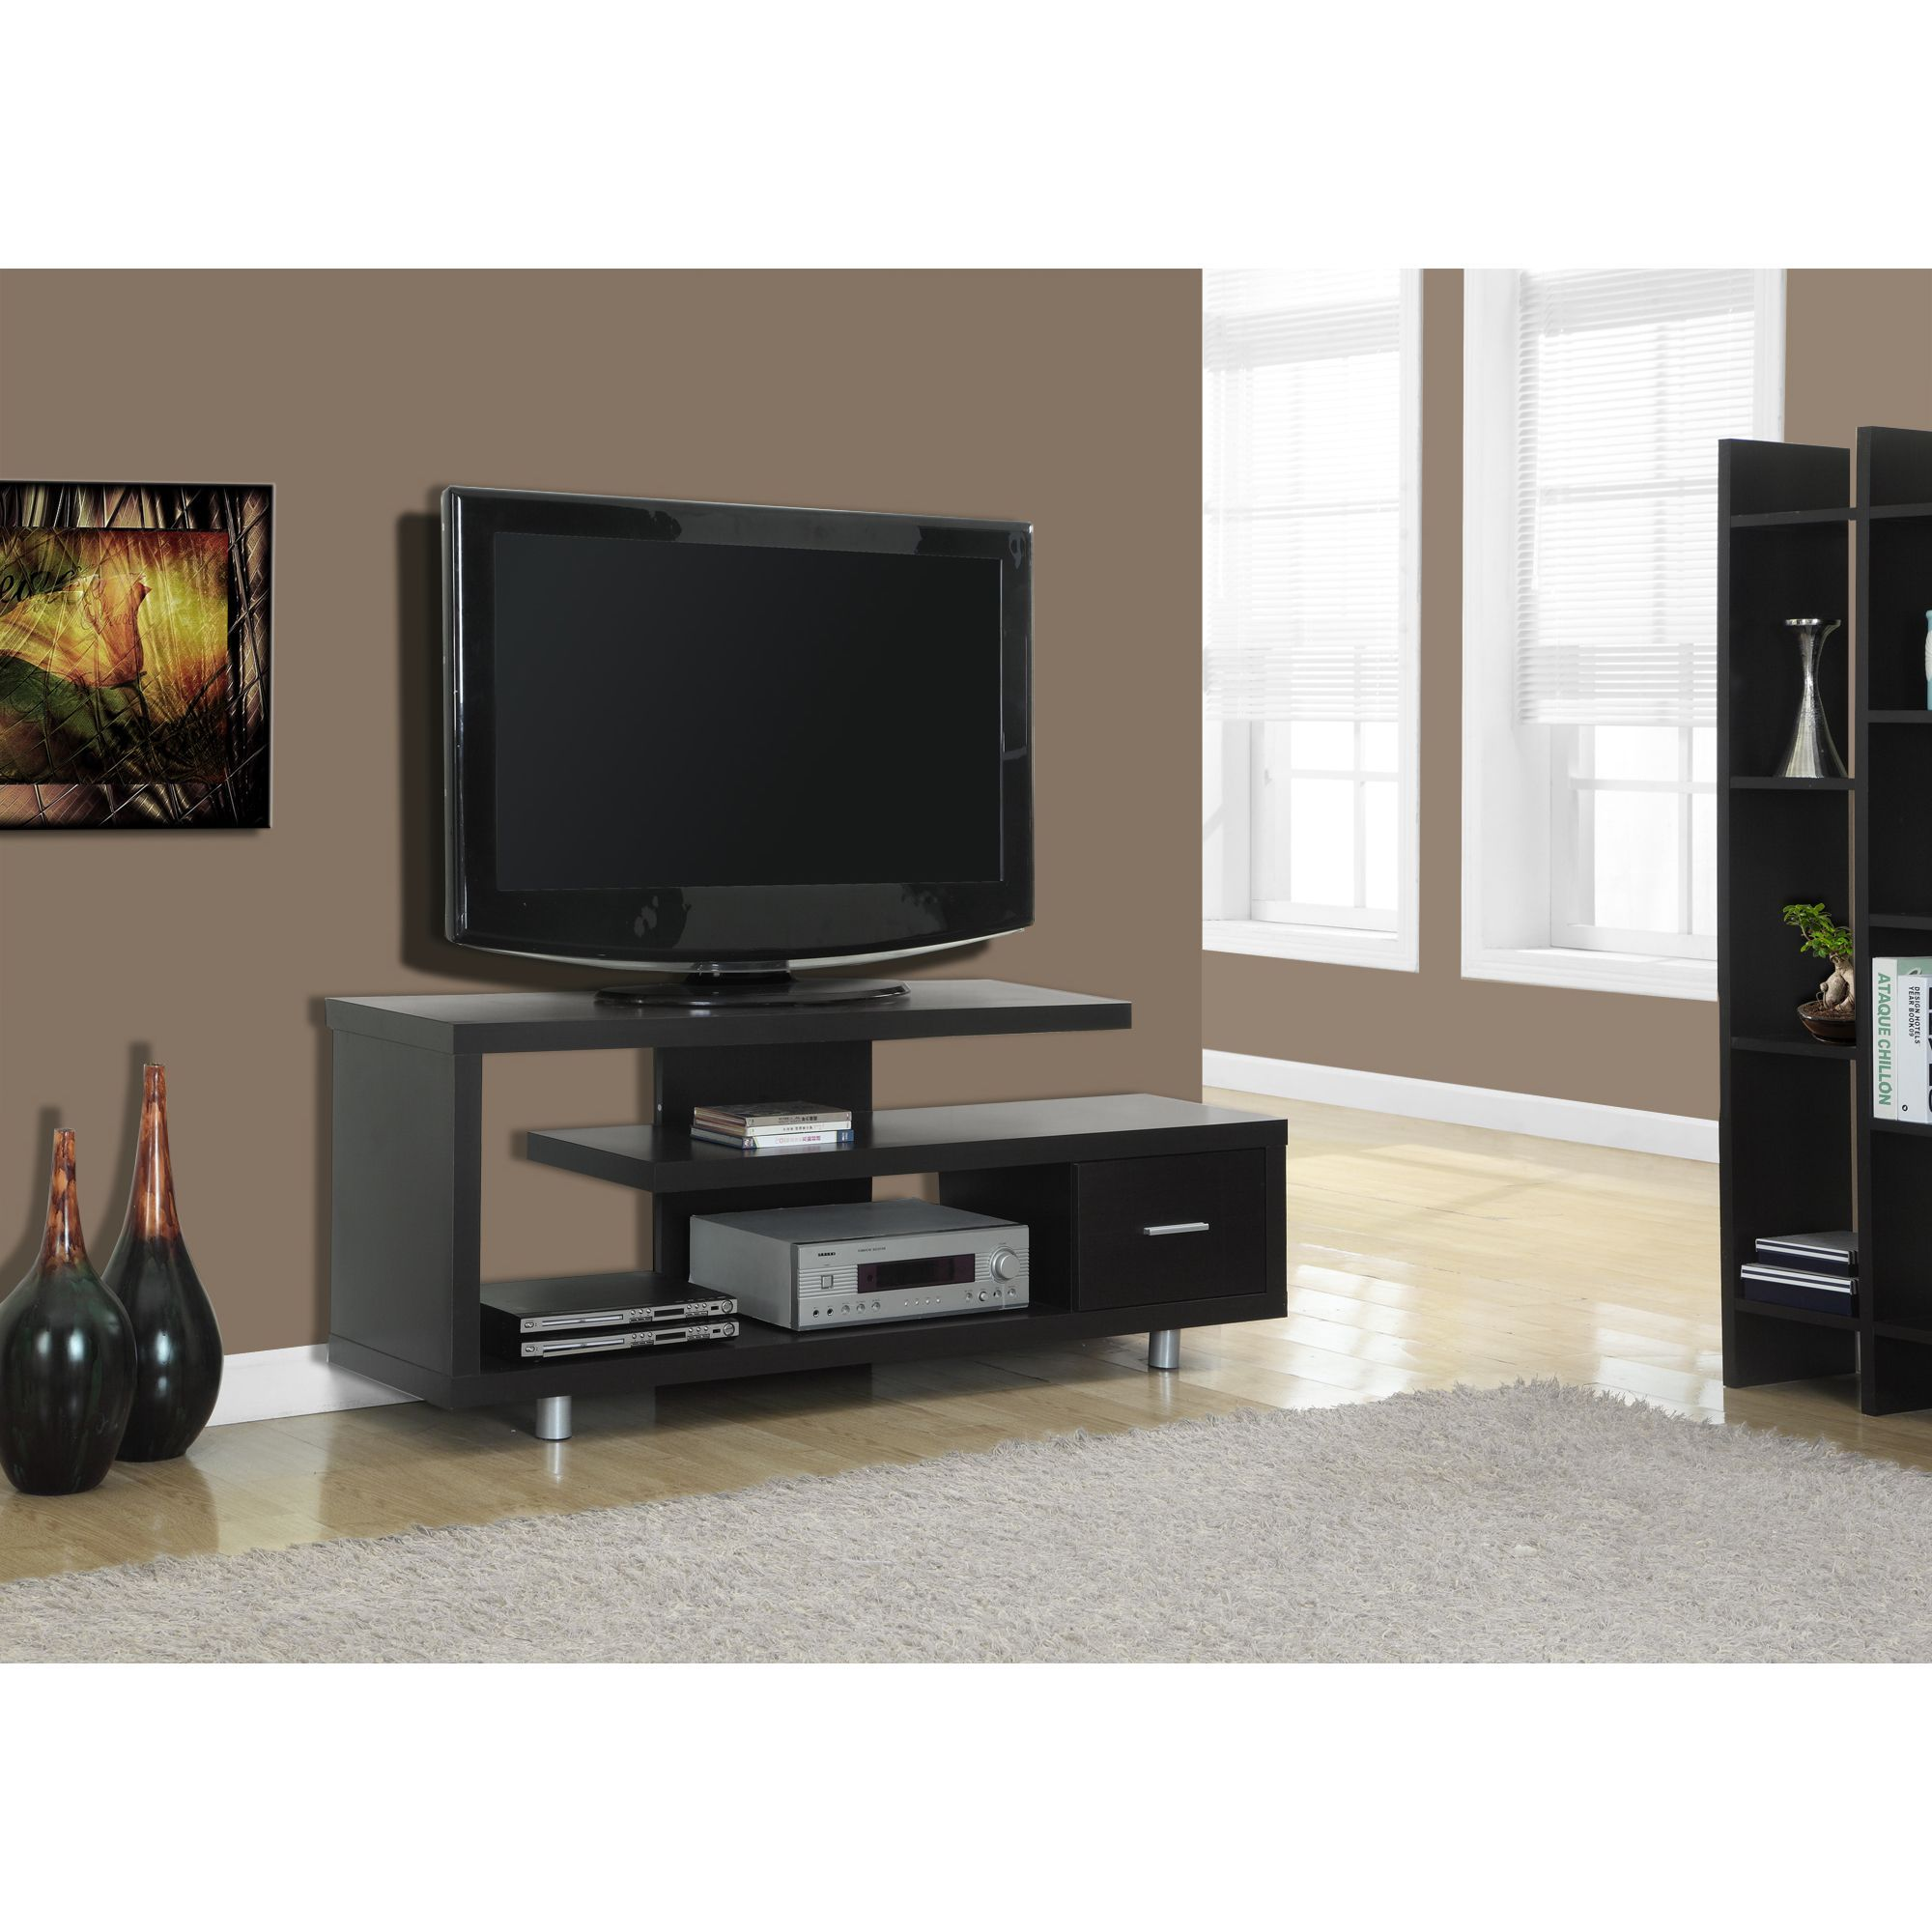 Cappuccino Hollow core 60 inch TV Console Overstock